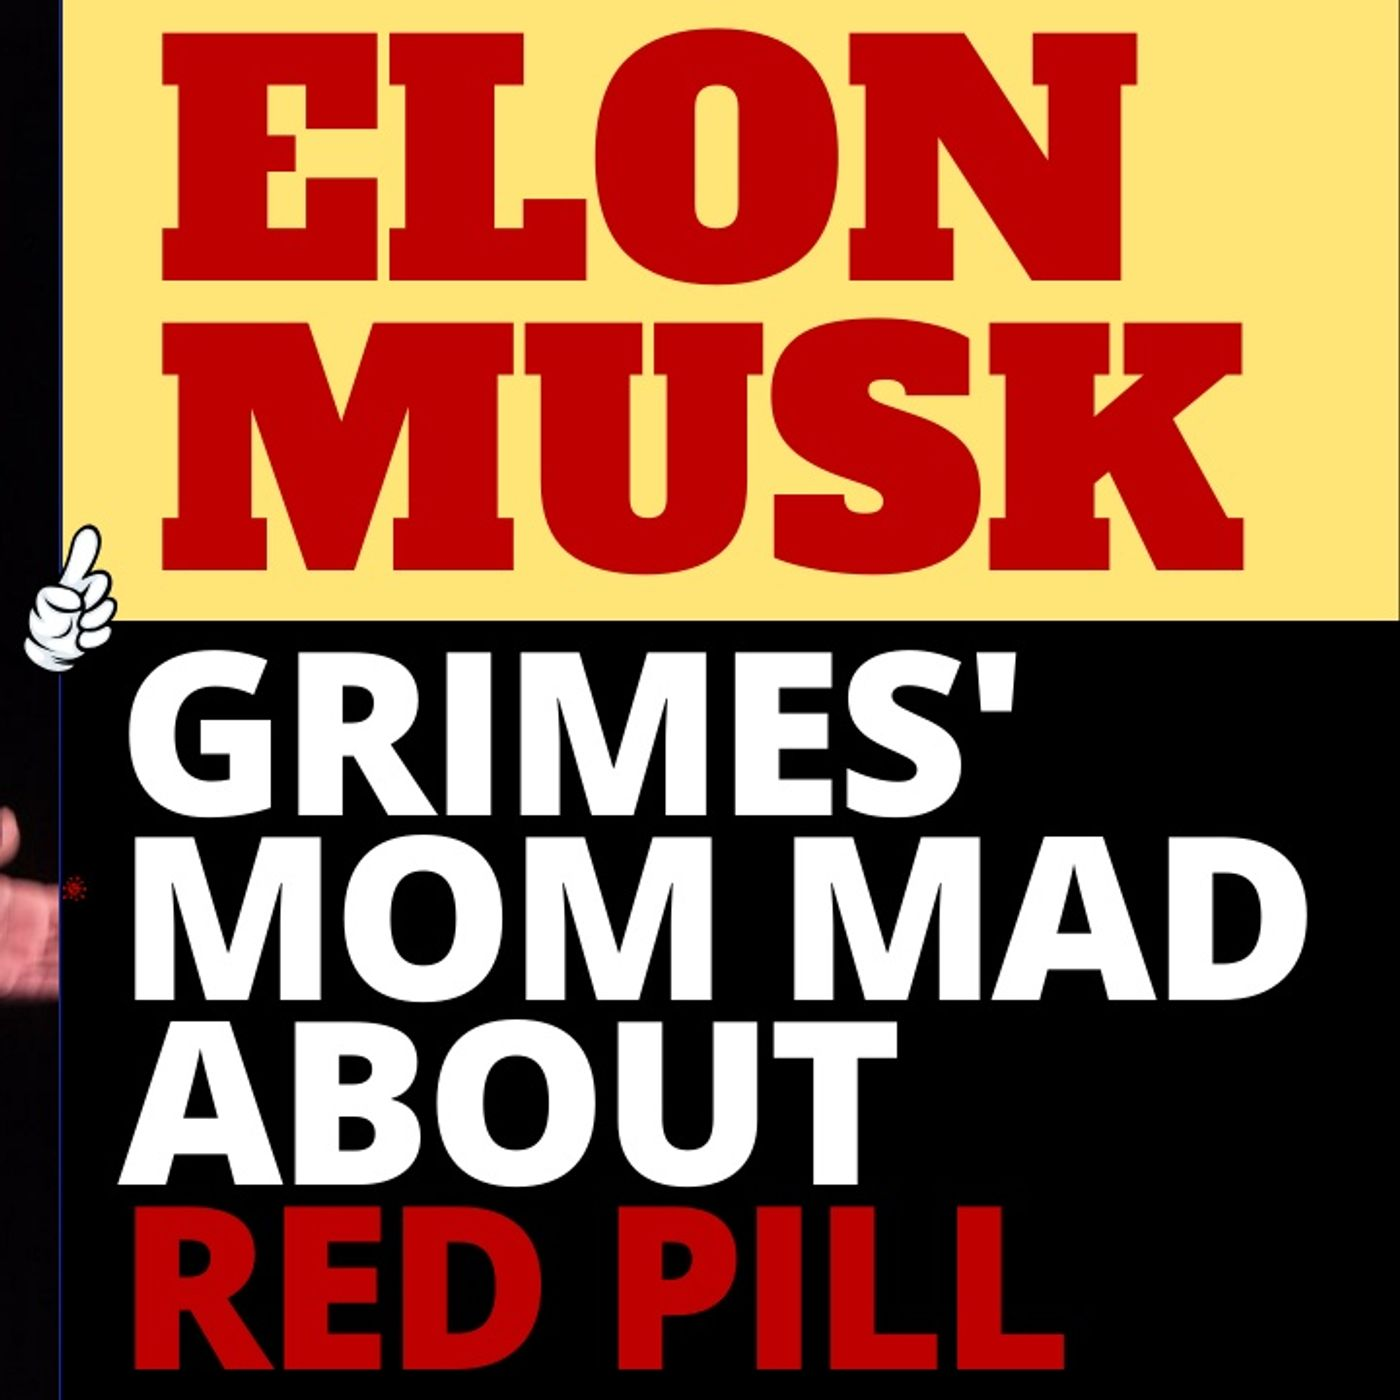 ELON MUSK : GRIMES MOM IS MAD AT HIM OVER RED PILL